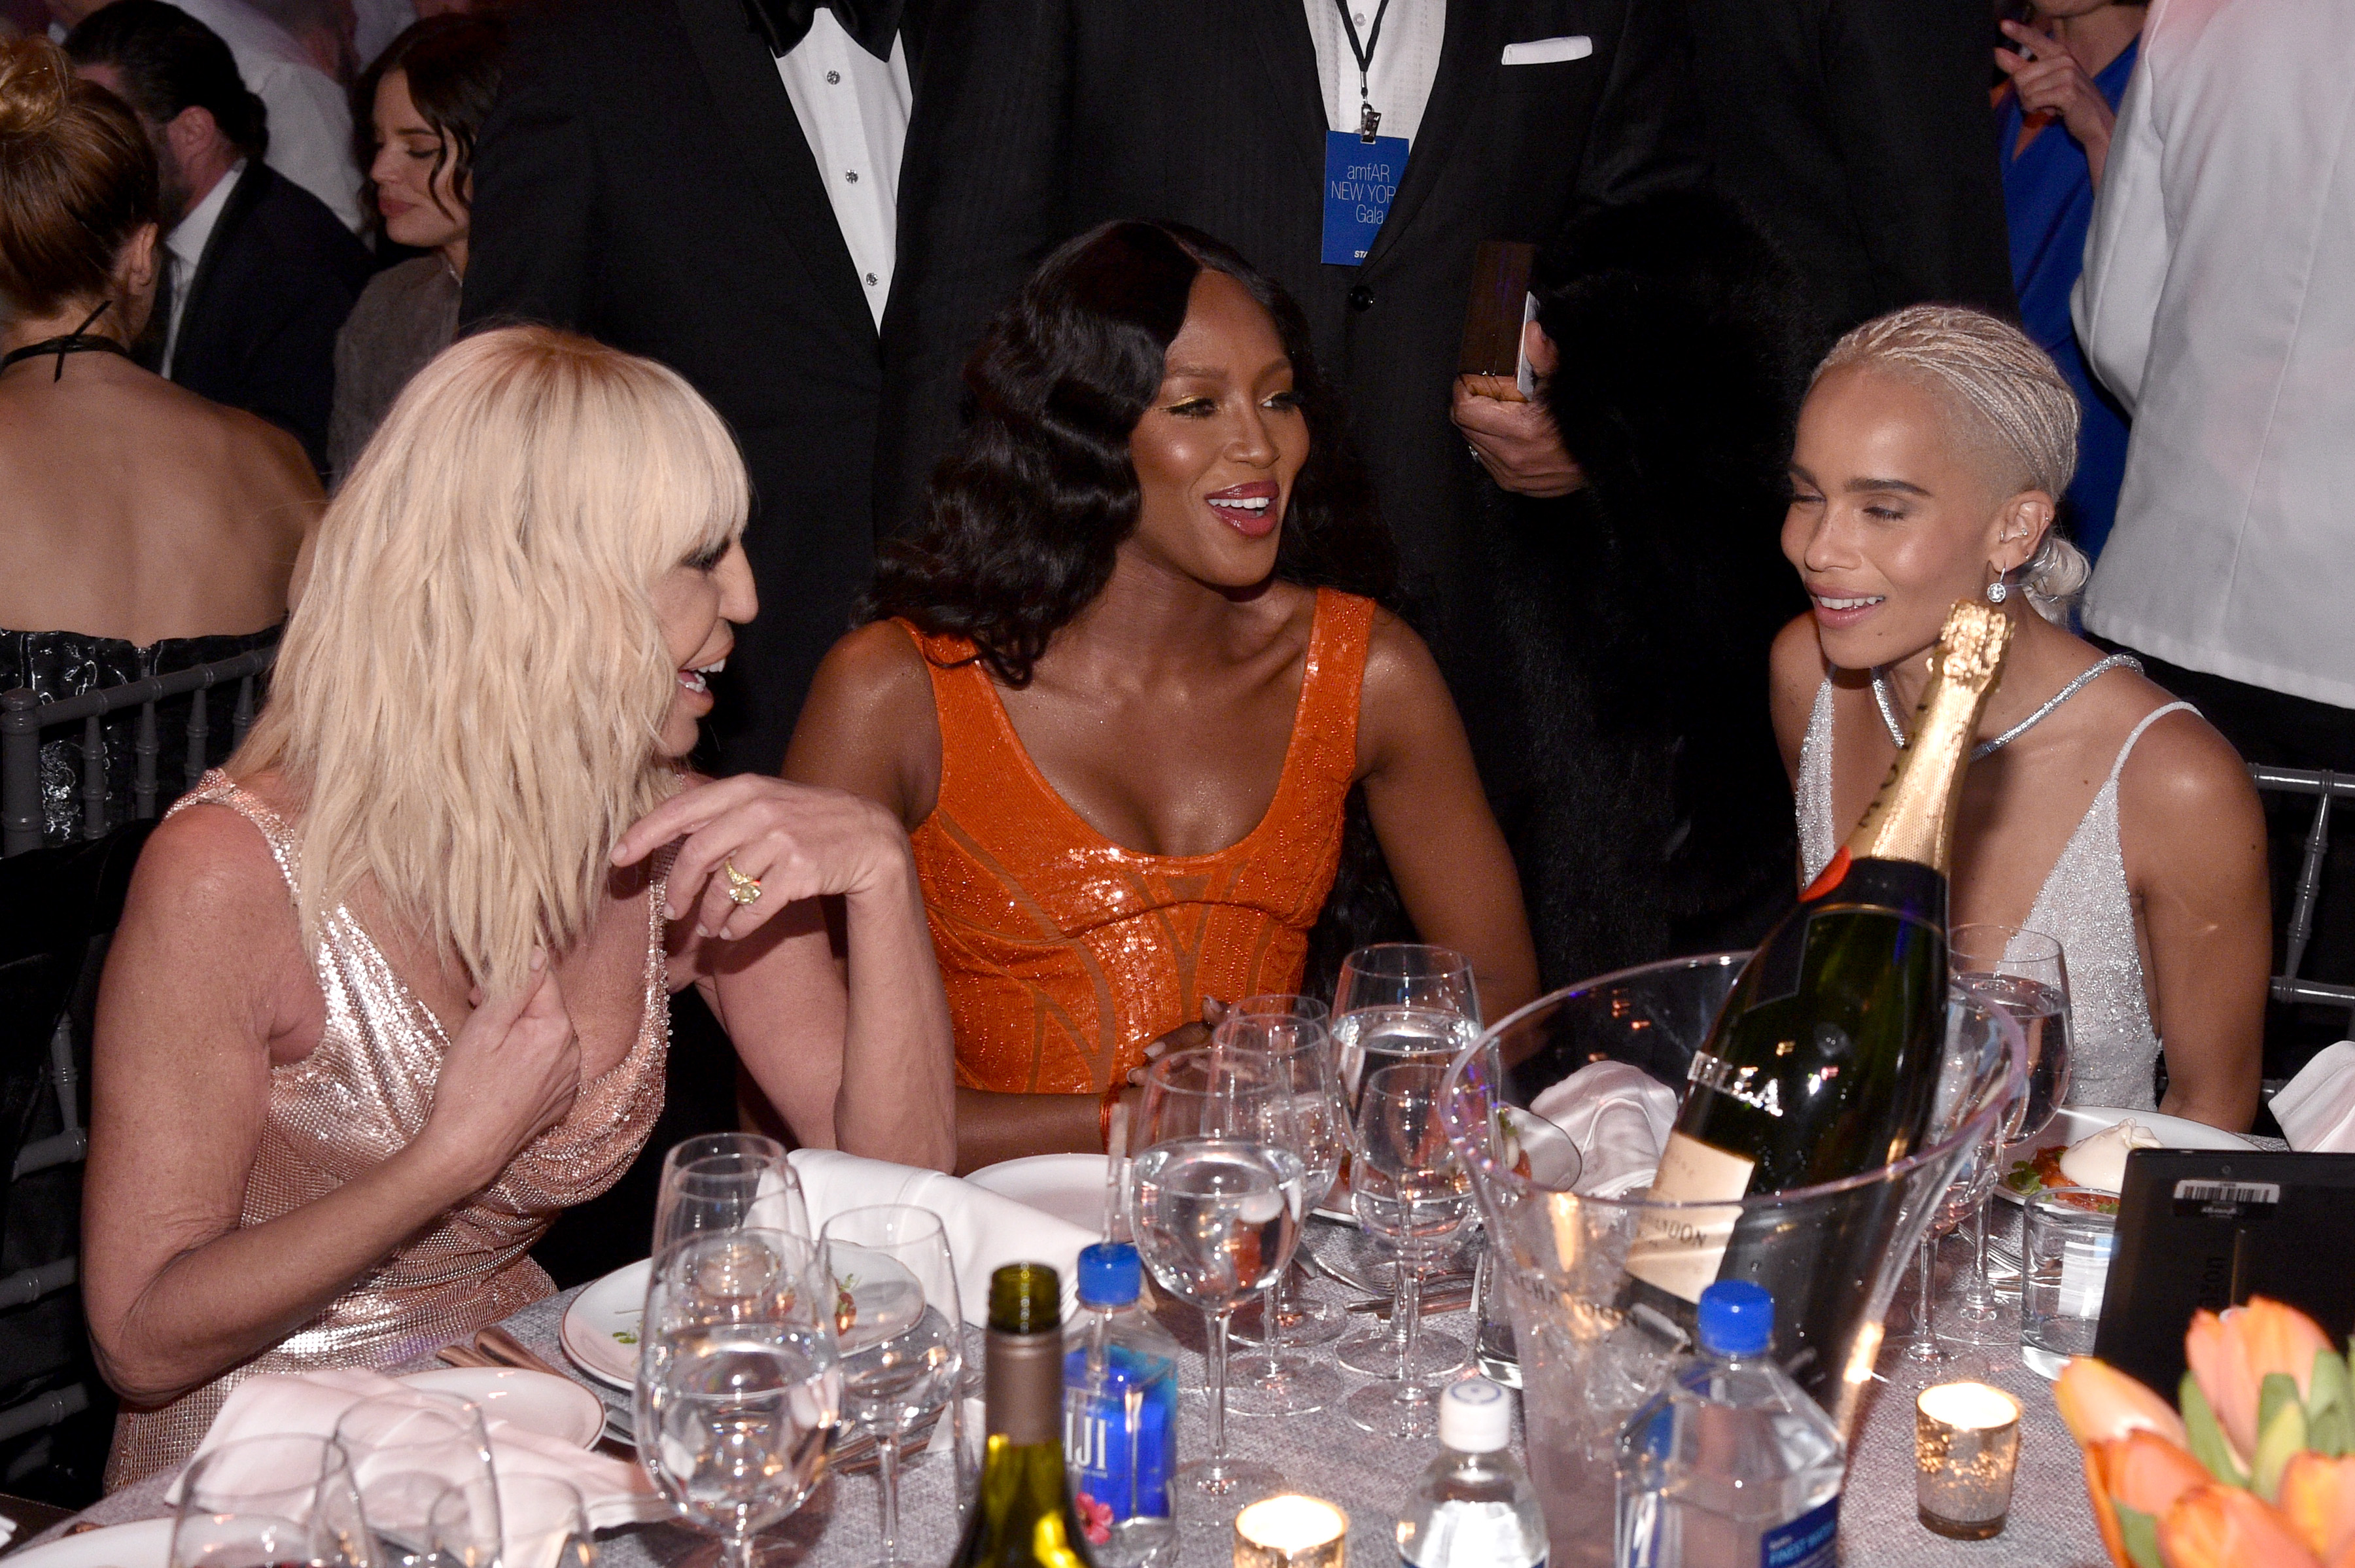 NEW YORK, NY - FEBRUARY 08: Donatella Versace, Naomi Campbell and Zoe Kravitz attend as Moet & Chandon Toasts to the amfAR New York Gala At Cipriani Wall Street at Cipriani Wall Street on February 8, 2017 in New York City.  (Photo by Bryan Bedder/Getty Images for Moet & Chandon)